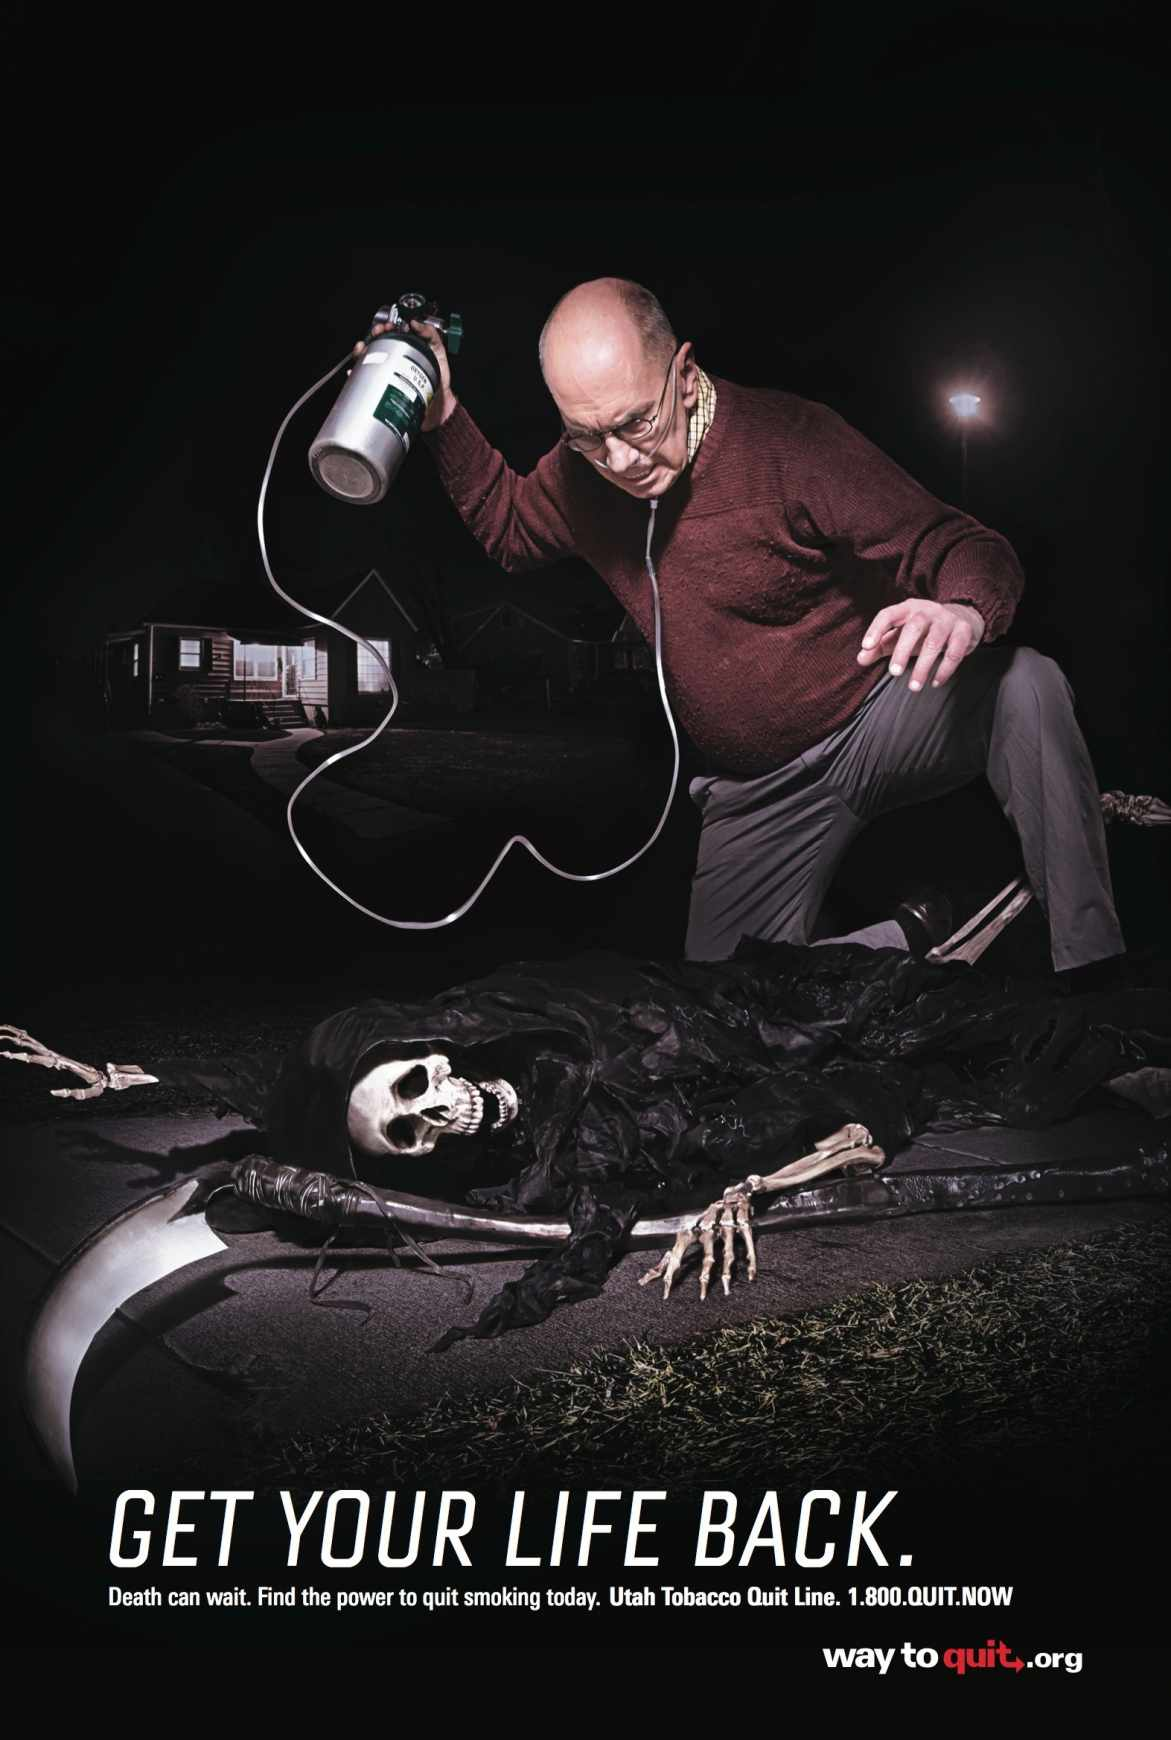 091300.01_tobut_reaper_ad_theater_poster_resize_27x40_on_ground_fnl-2_aotw